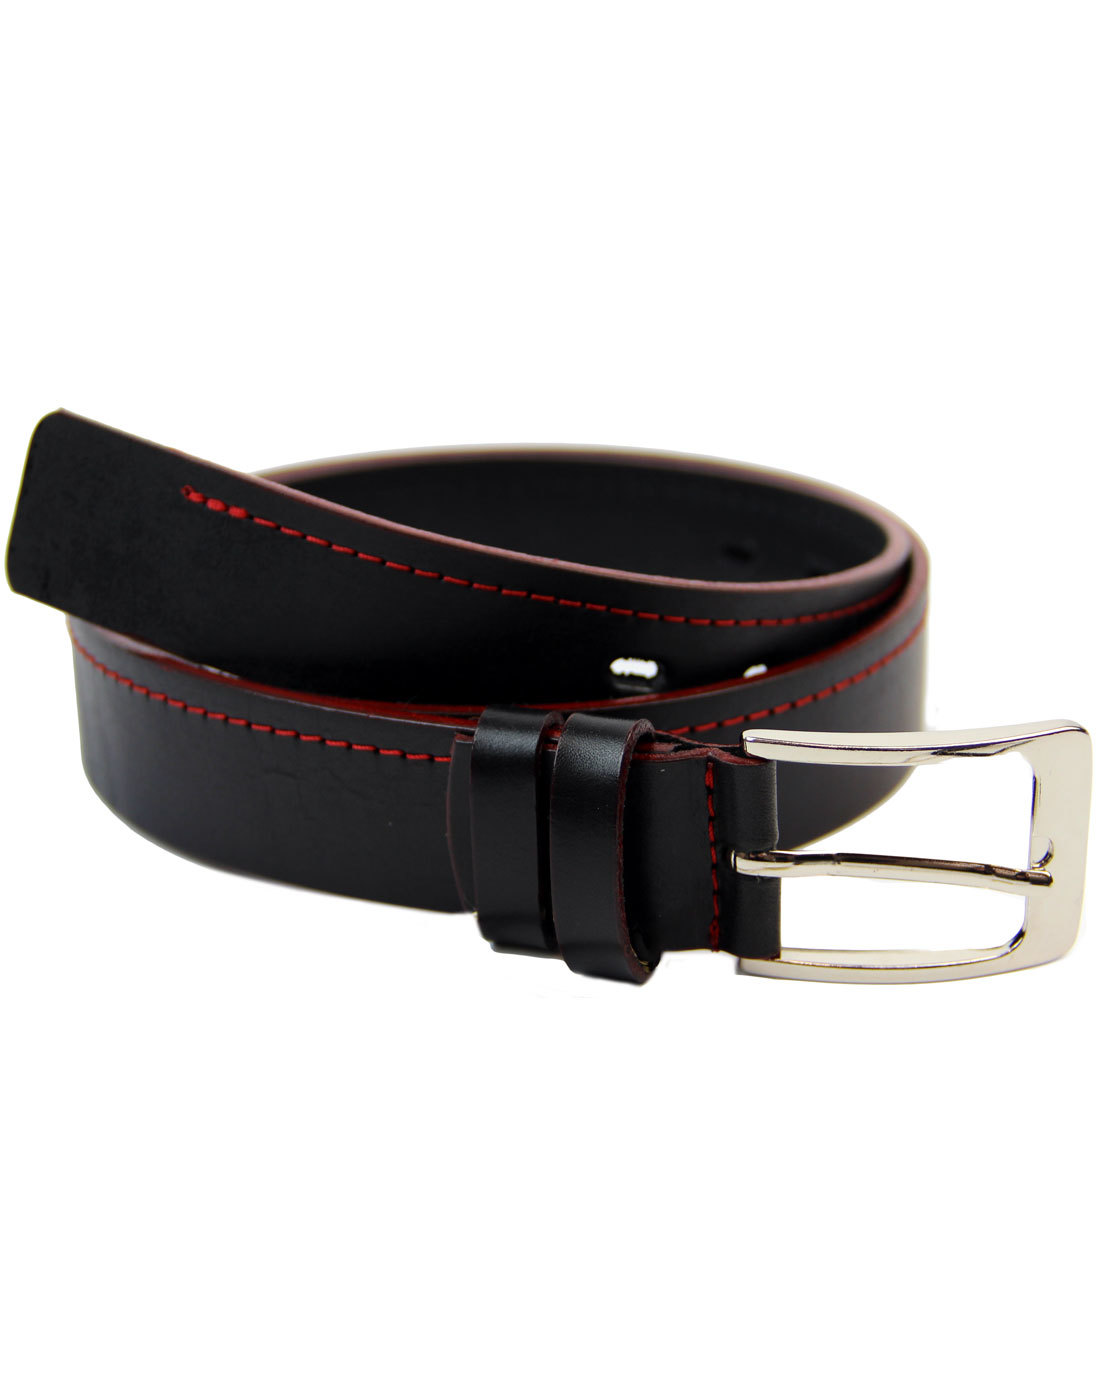 LACUZZO Retro Indie Mod Red Stitch Leather Belt